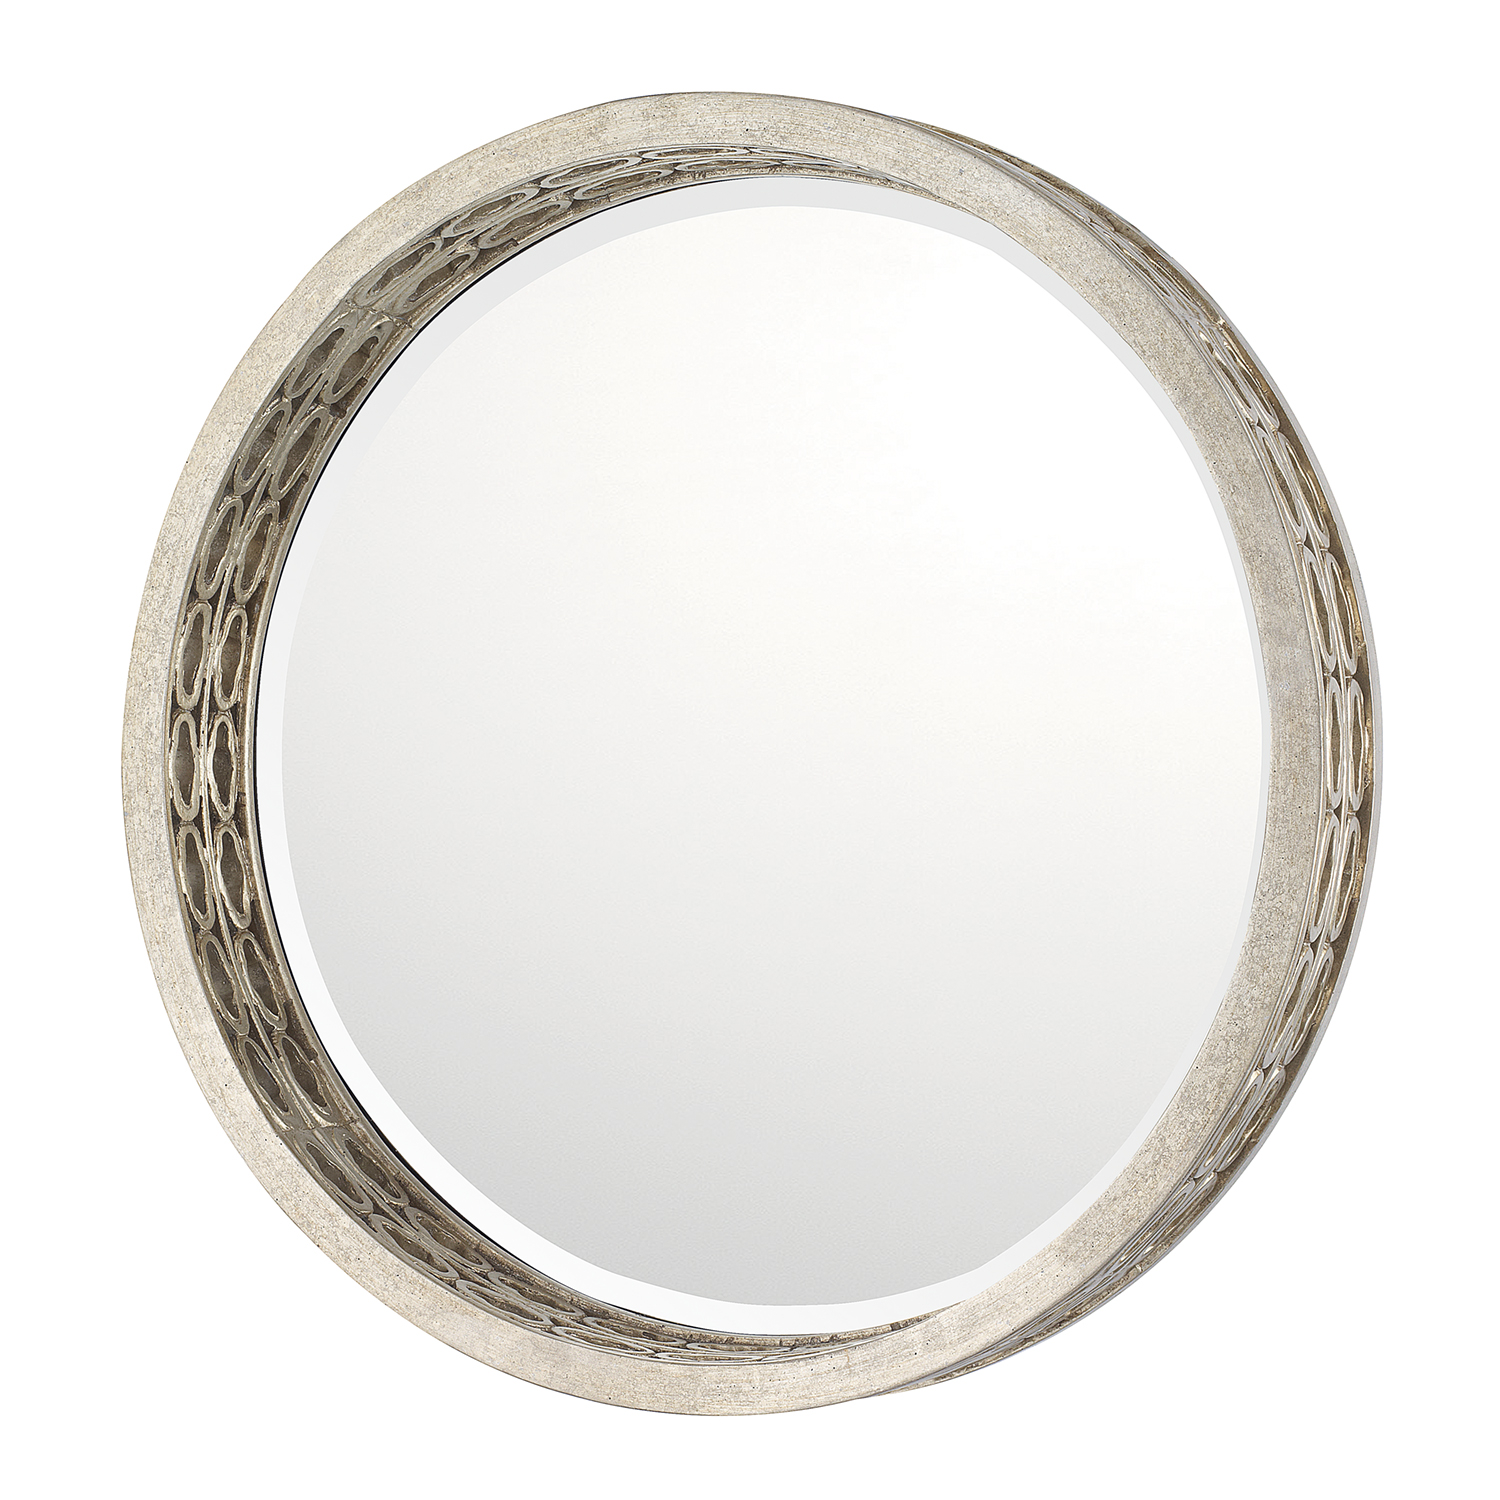 Decorative Mirror from the Mirrors collection by Capital Lighting 717001MM